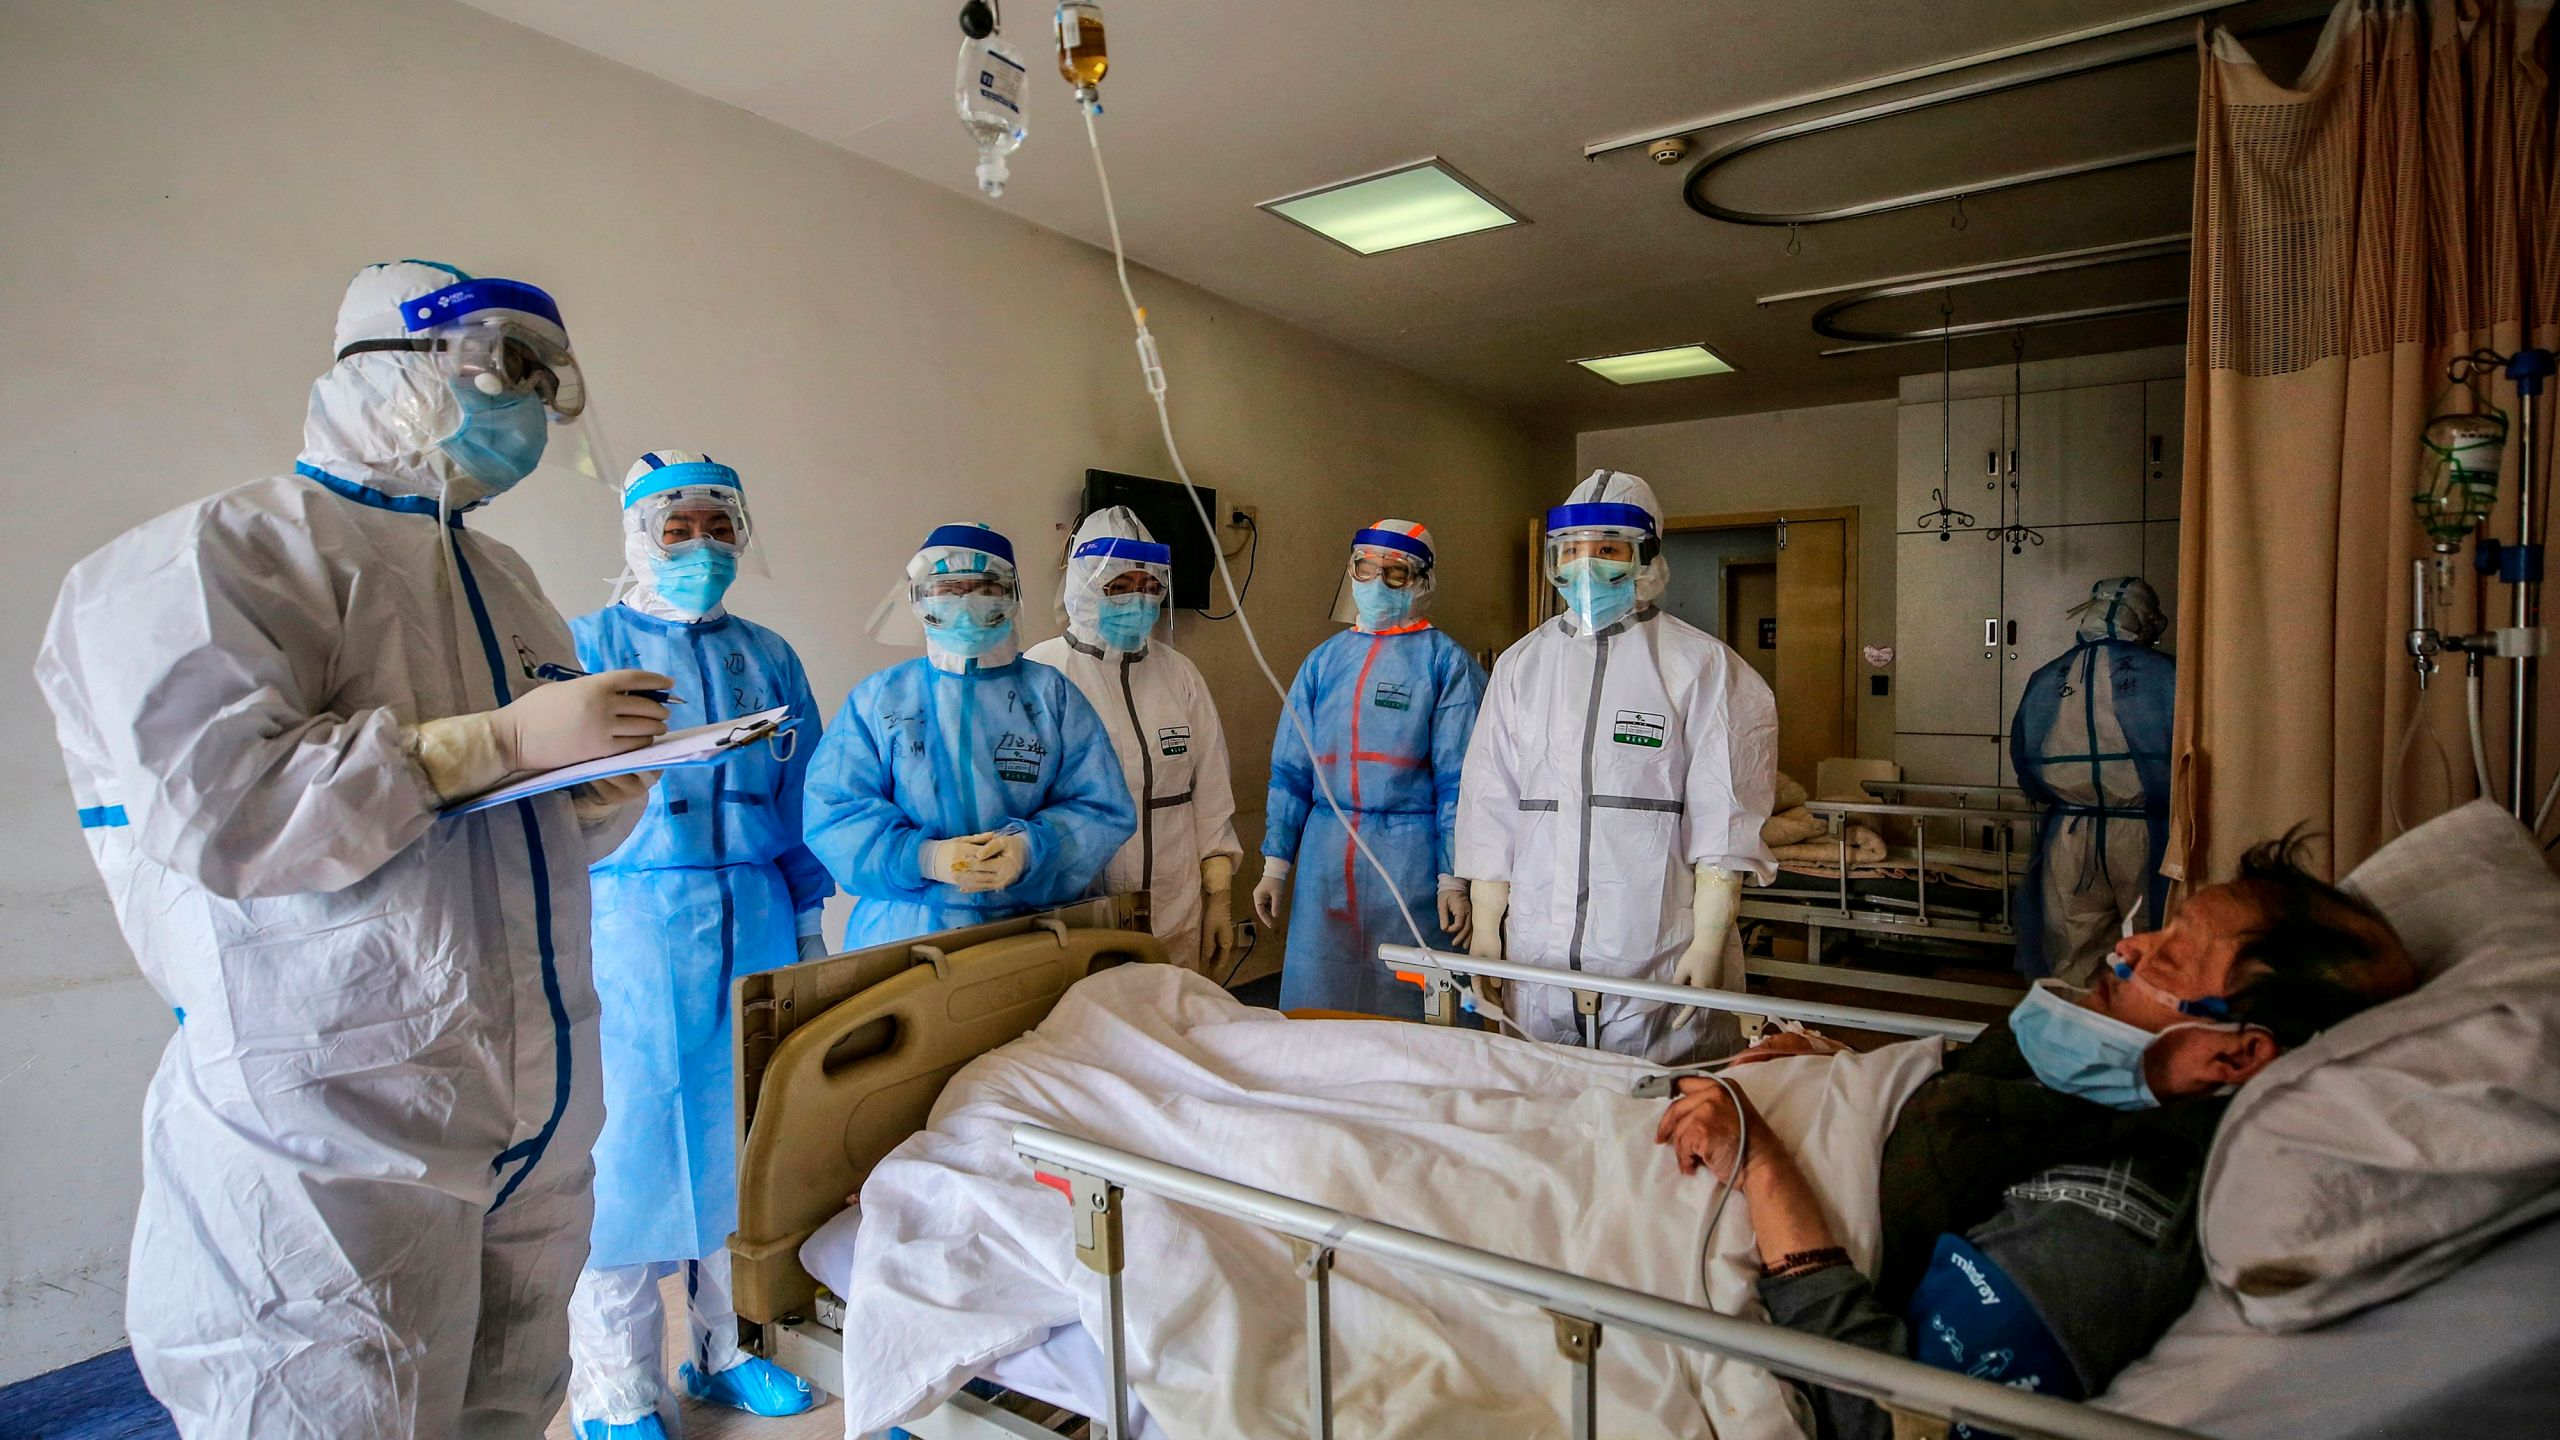 Medical staff speak with a COVID-19 patient at Red Cross Hospital in Wuhan, China, on March 10, 2020. (STR/AFP via Getty Images)